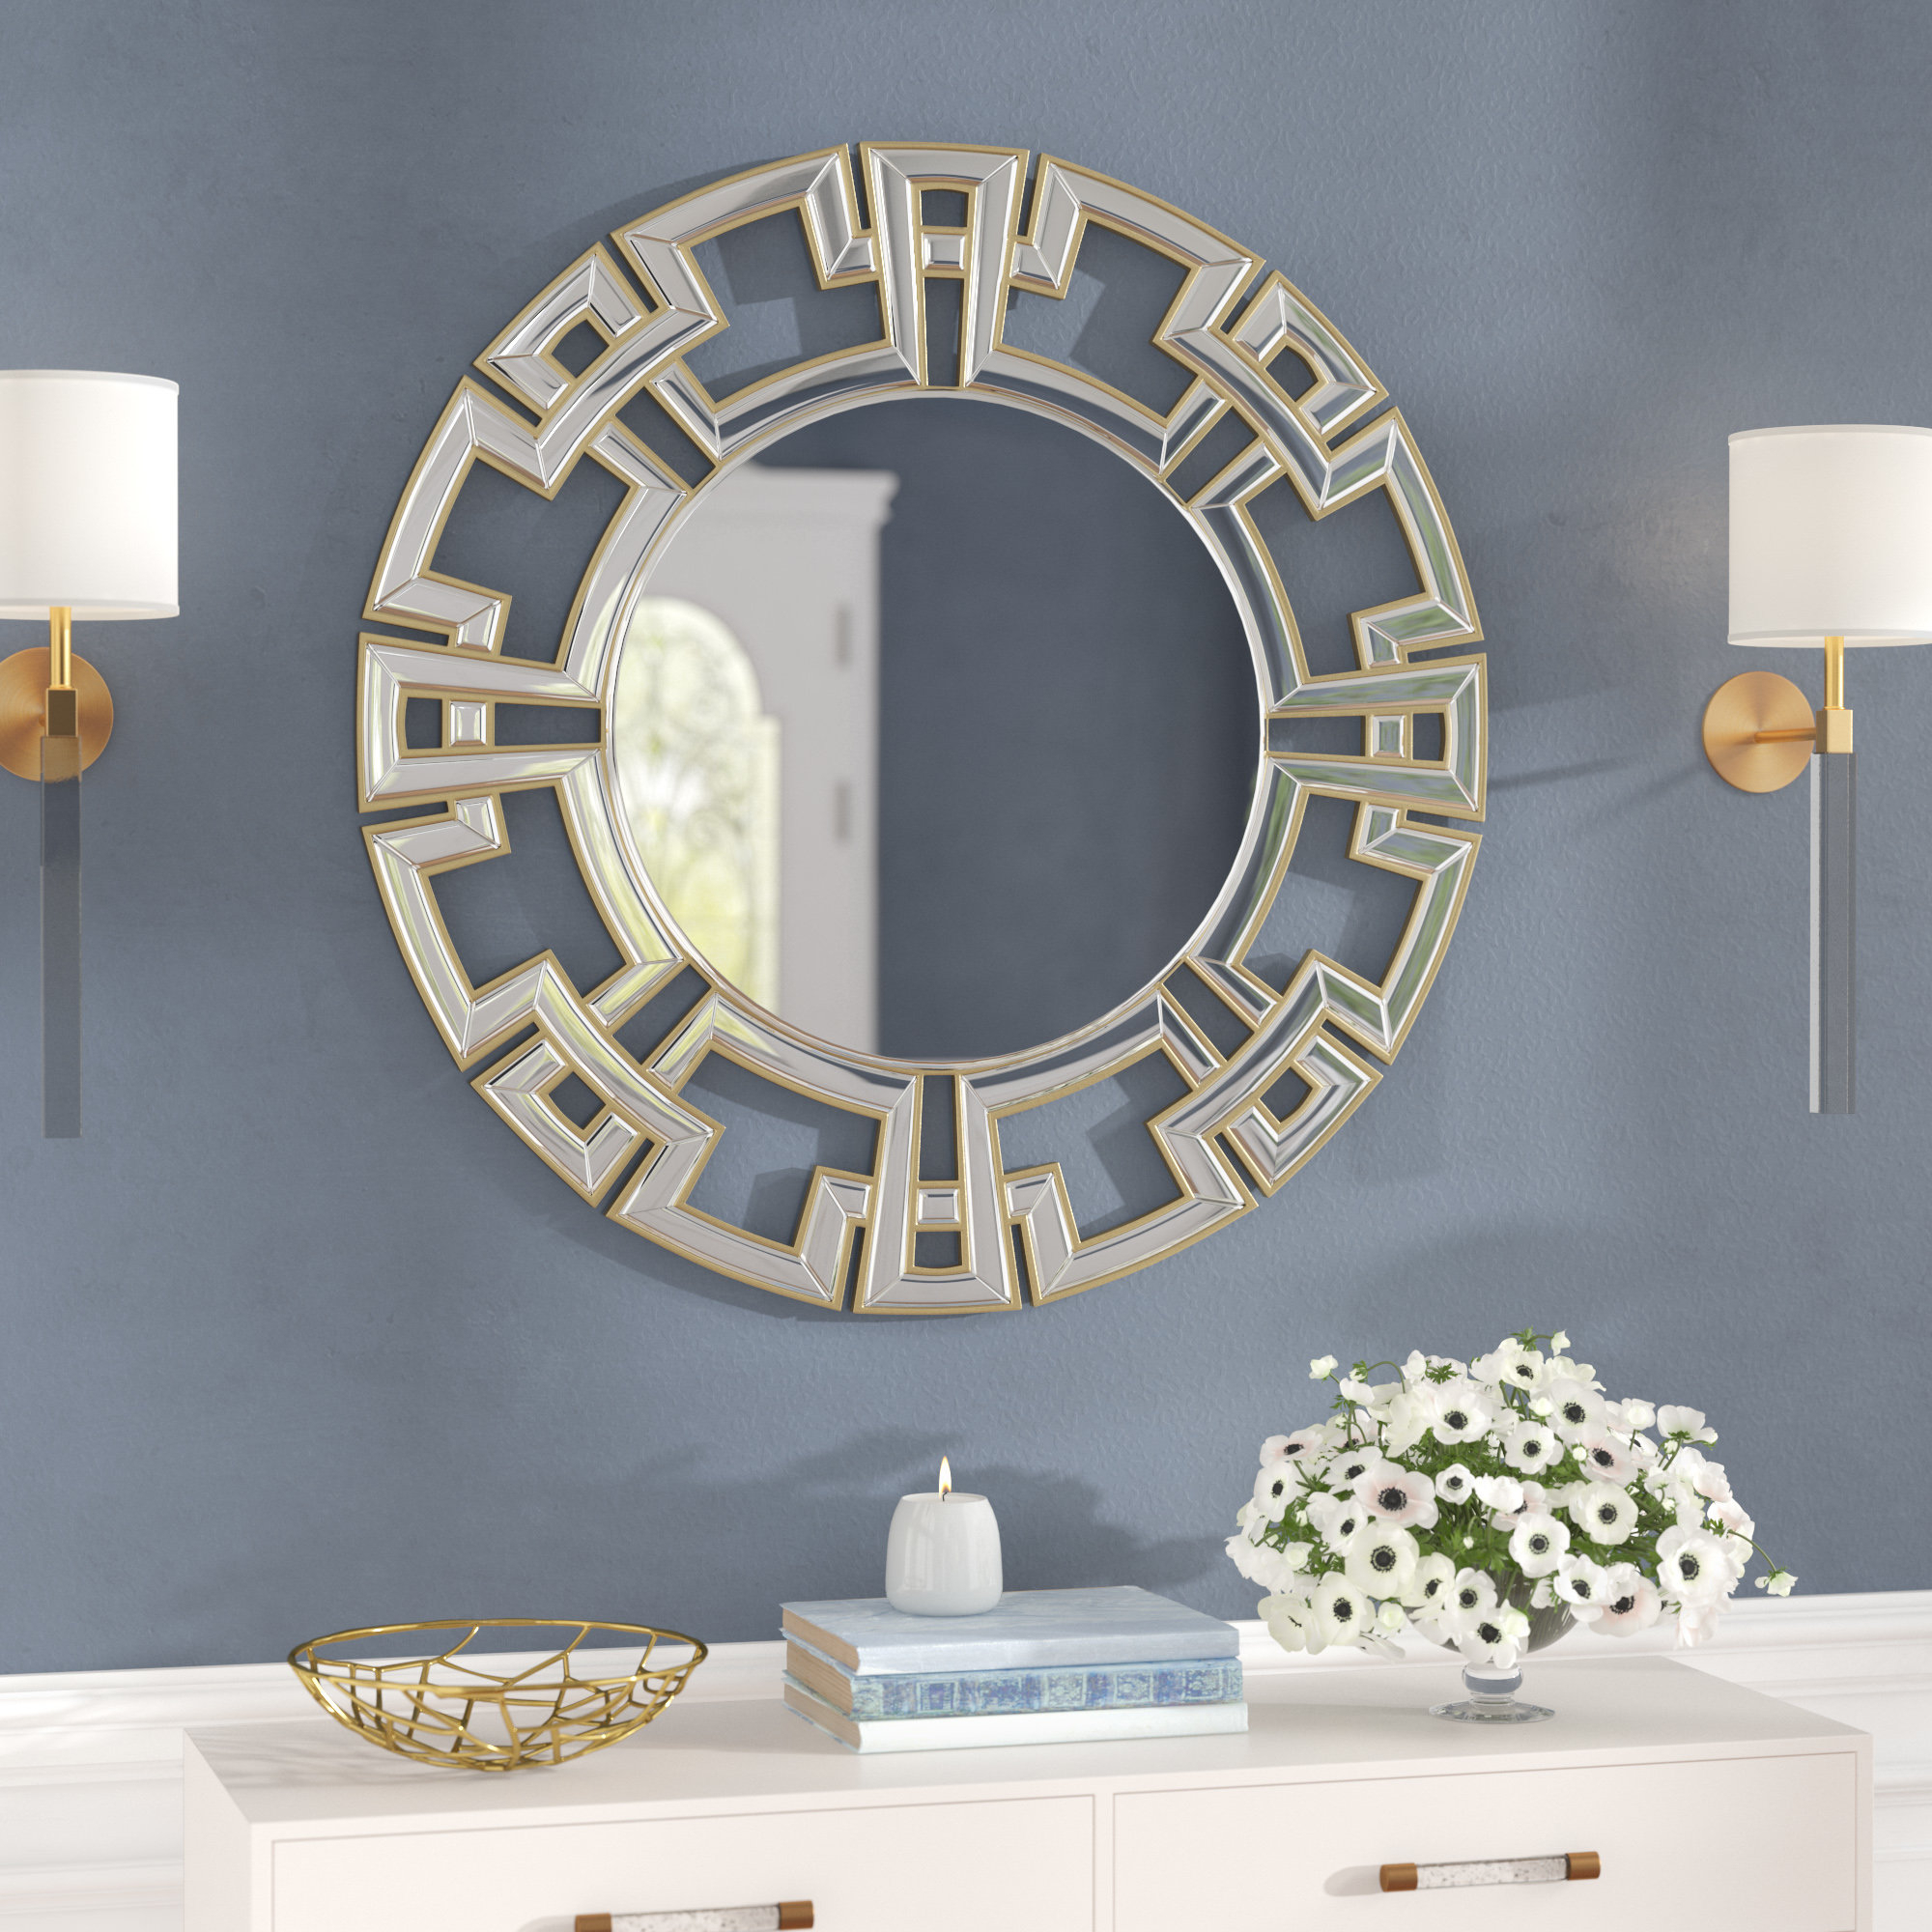 Most Current Tata Openwork Round Wall Mirrors Throughout Tata Openwork Round Wall Mirror (View 10 of 20)